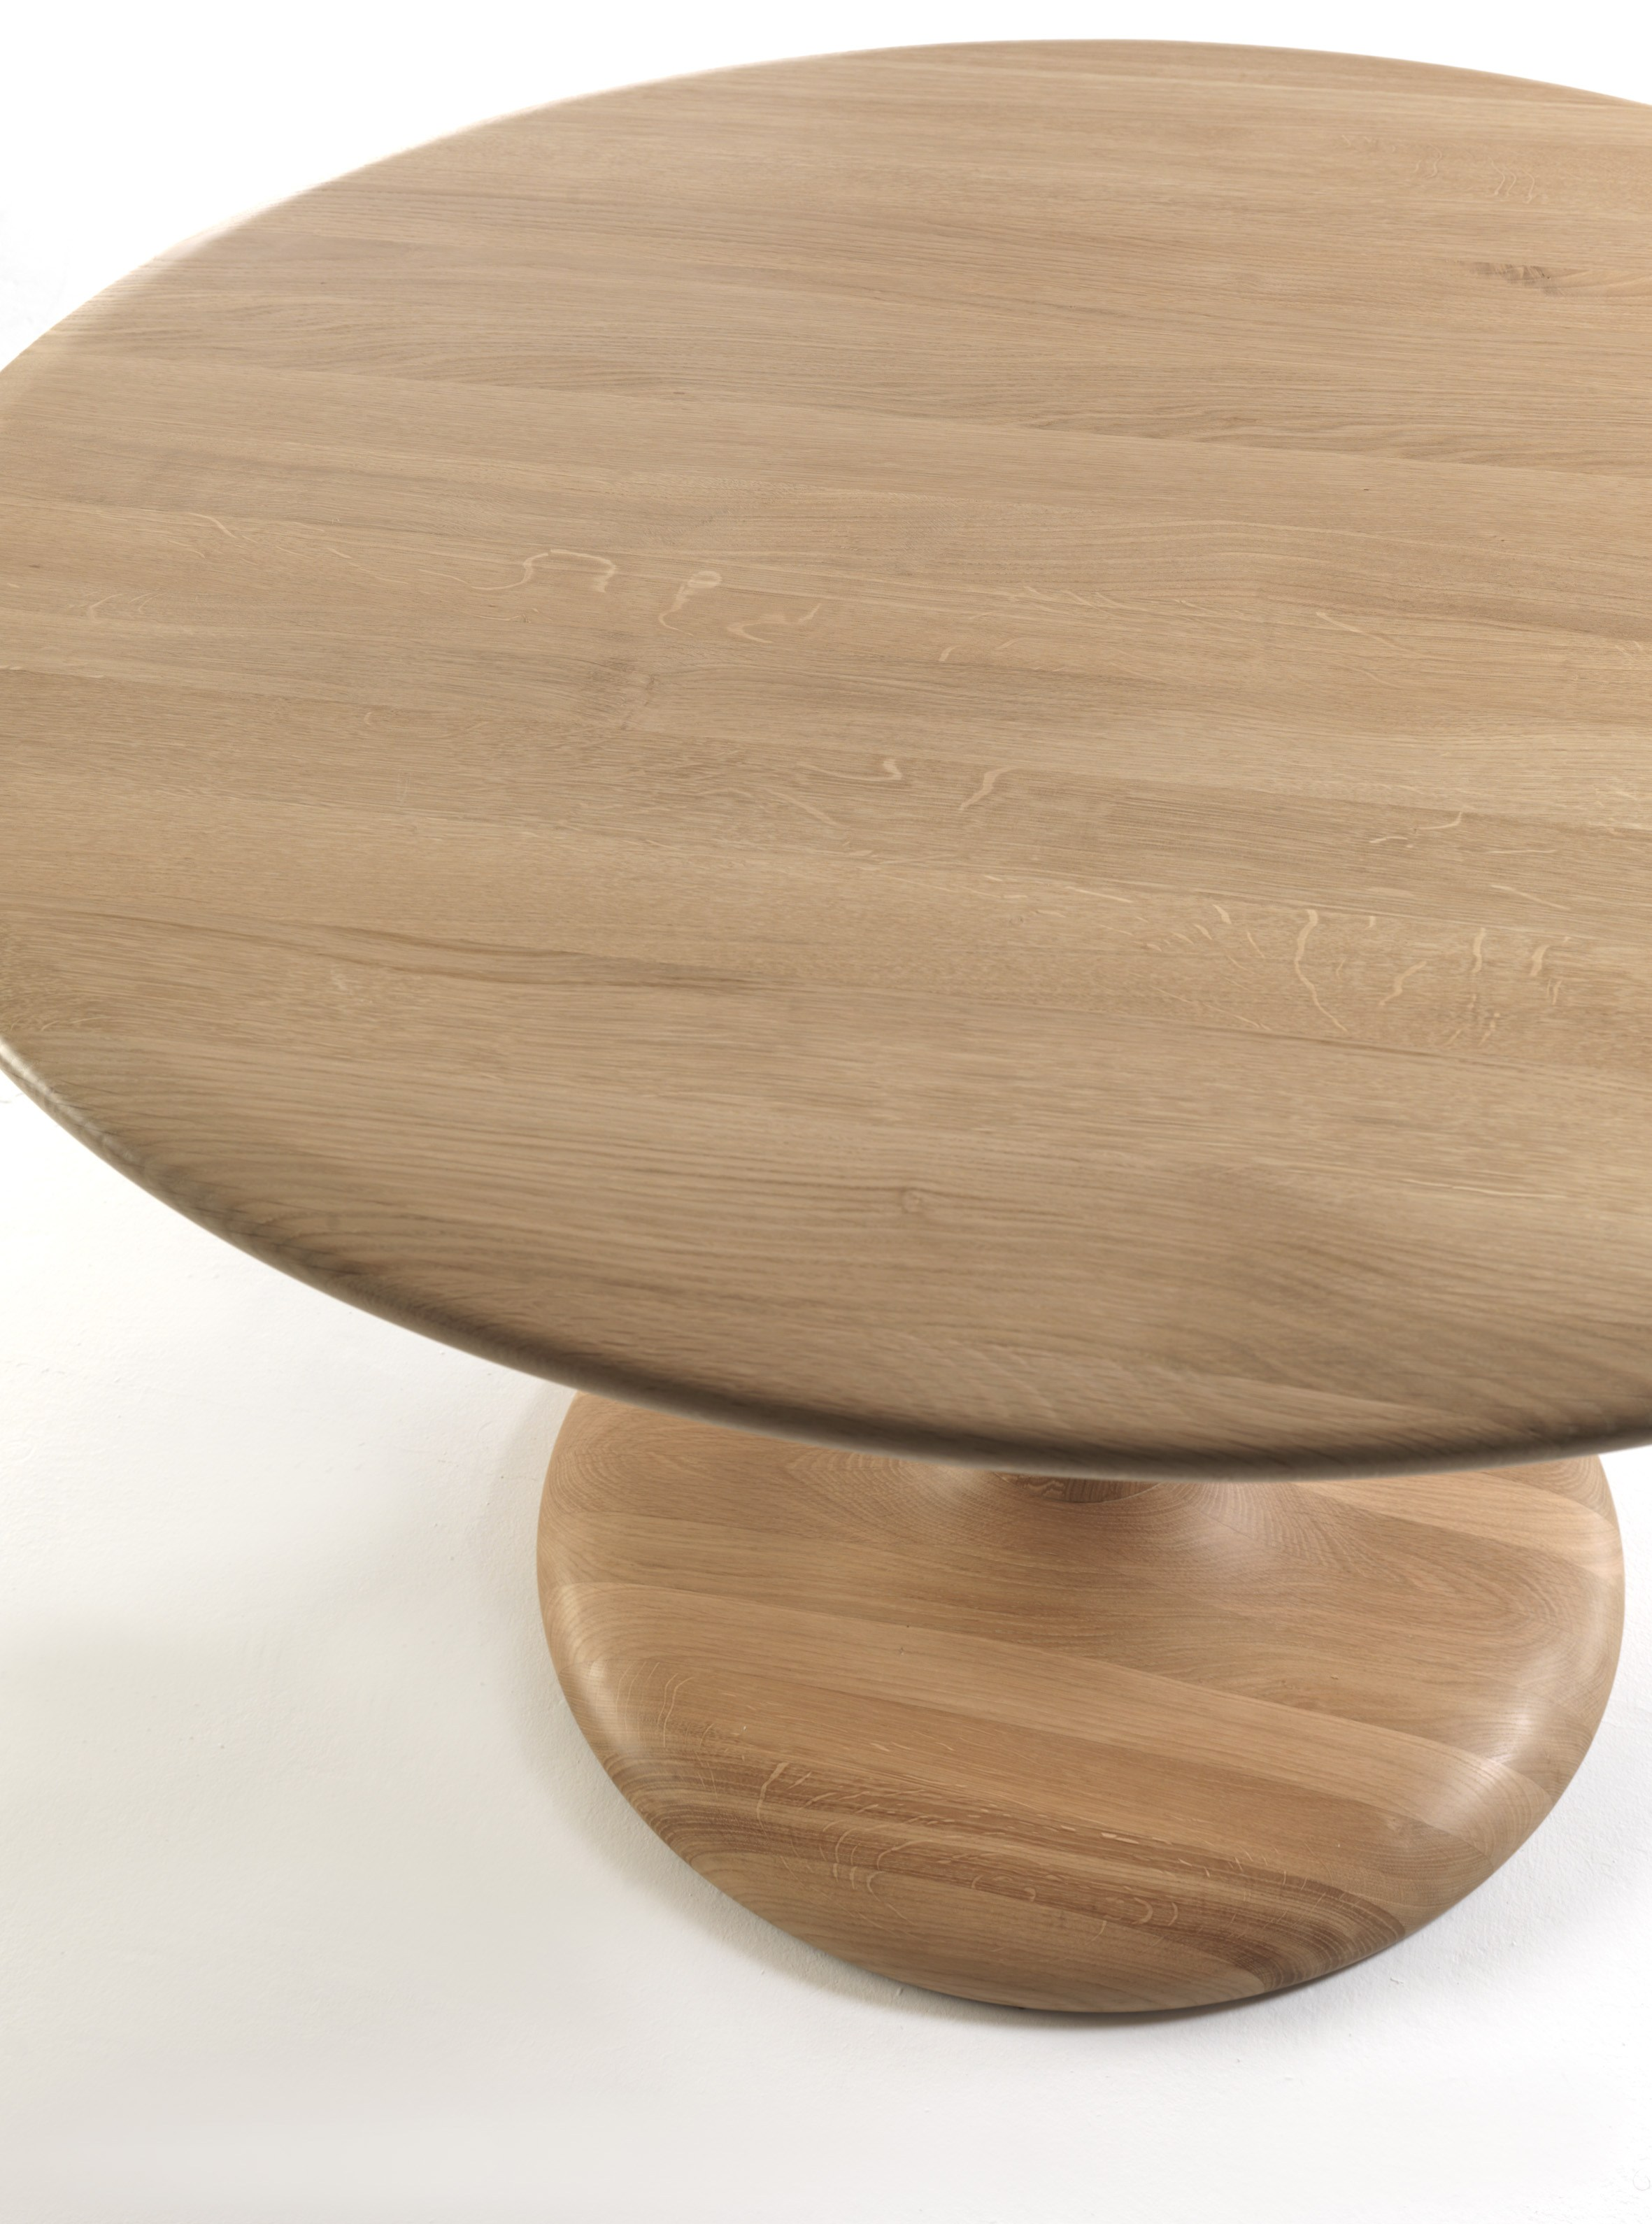 Table ronde en bois peo by riva 1920 design maurizio riva - Relooker table ronde bois ...